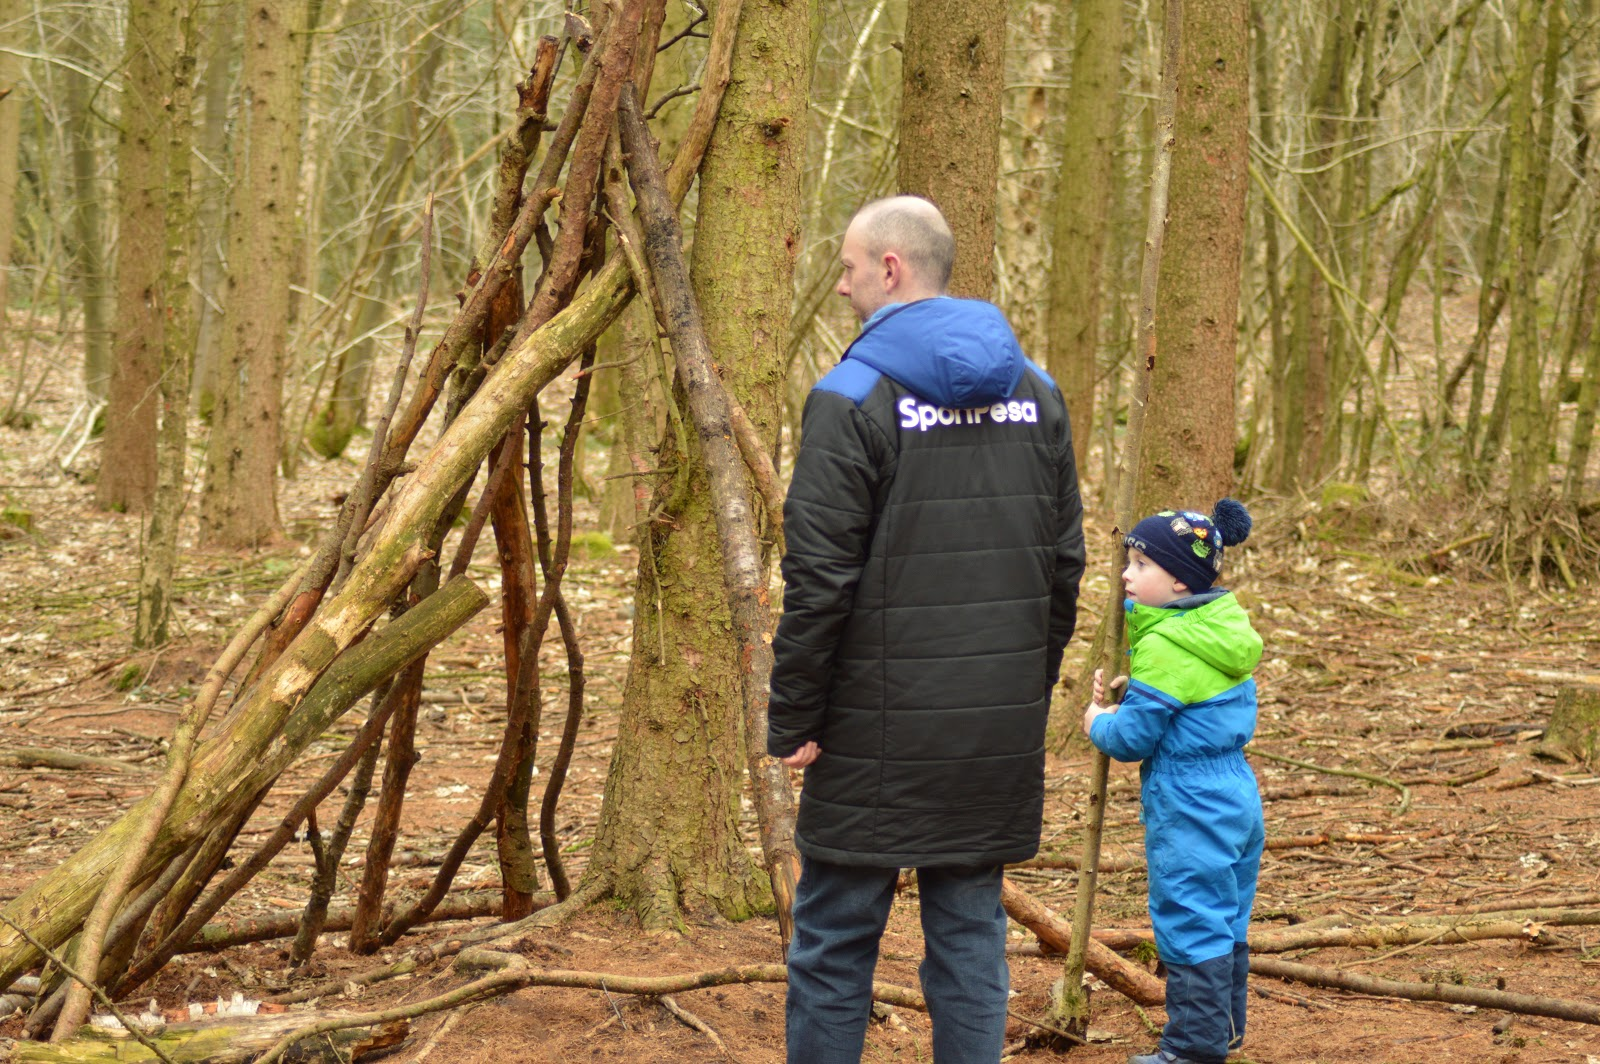 A dad and son den building at Delamere Forest